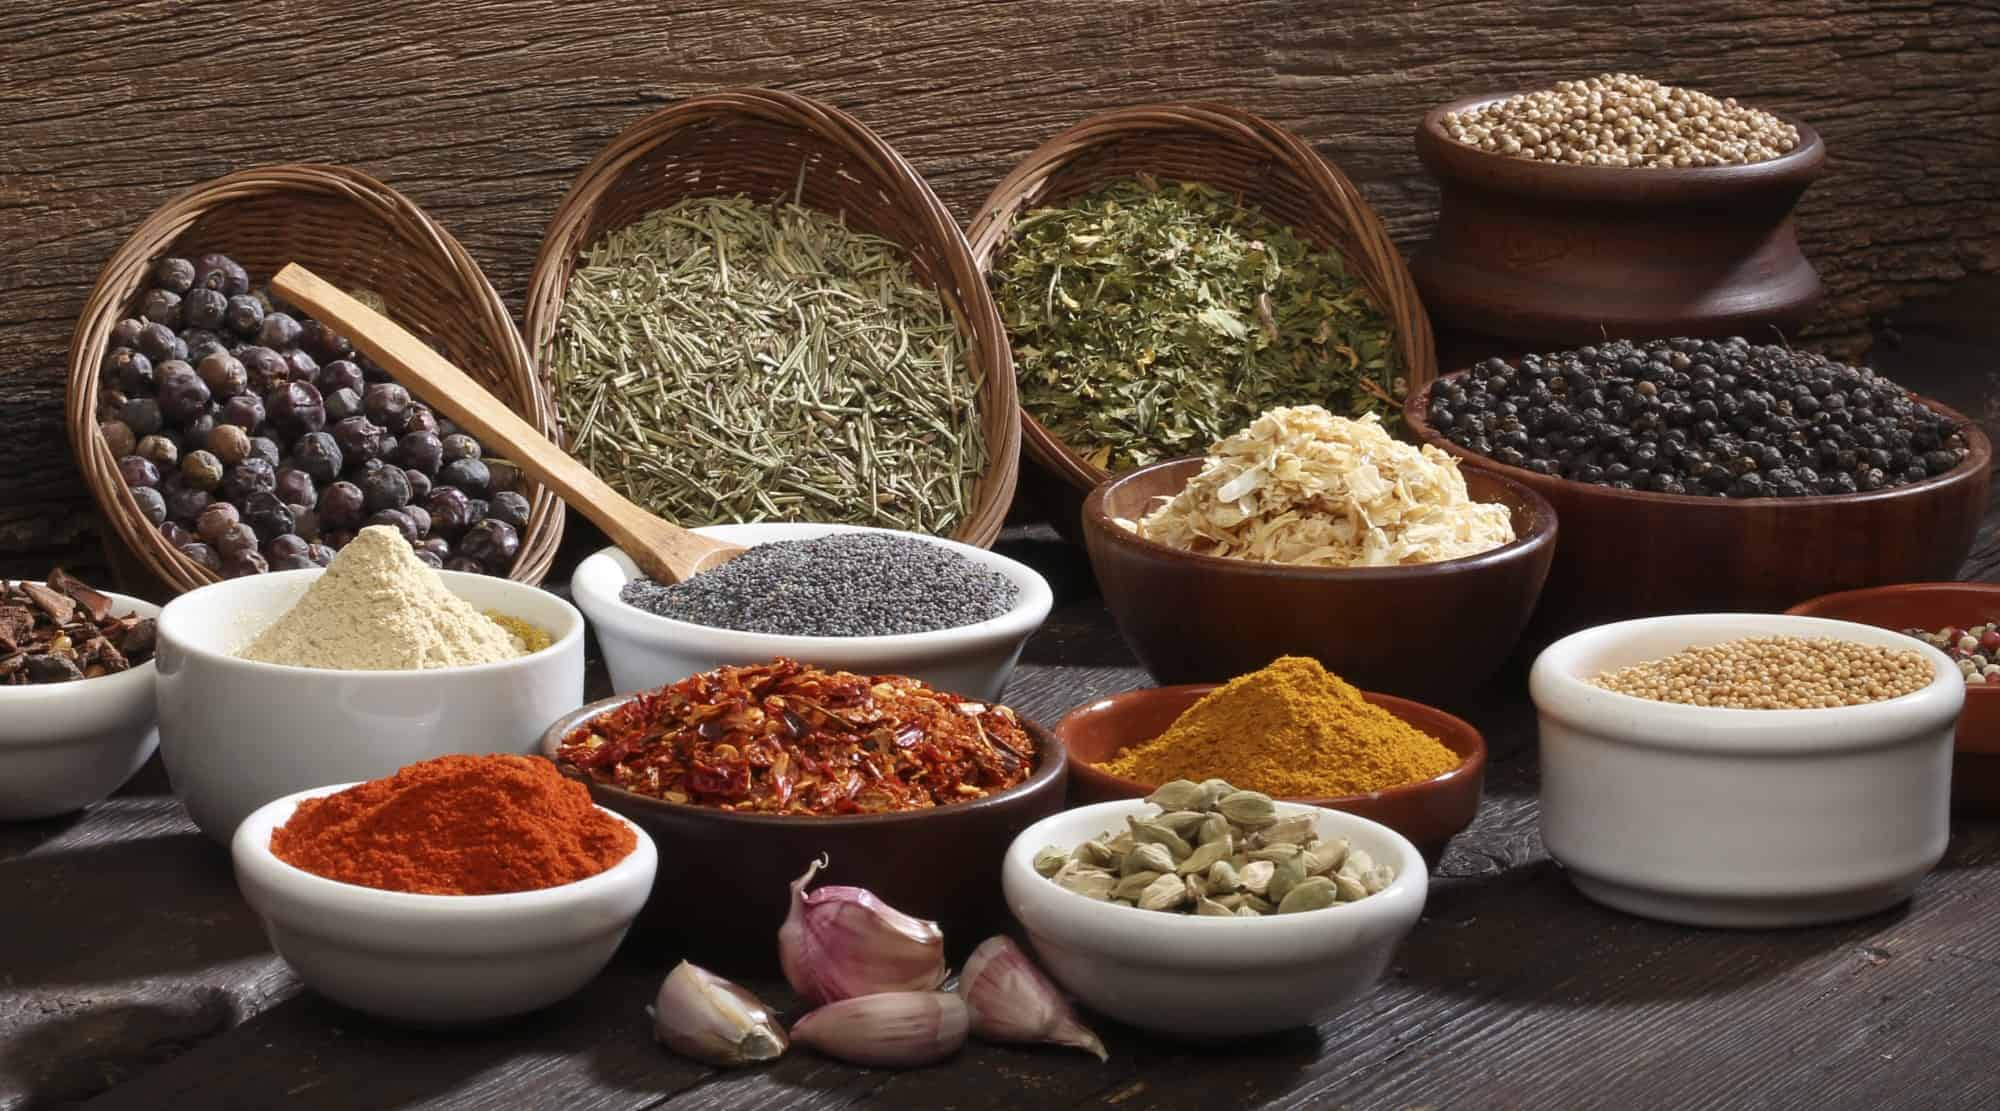 Alchemy uses many of these spices